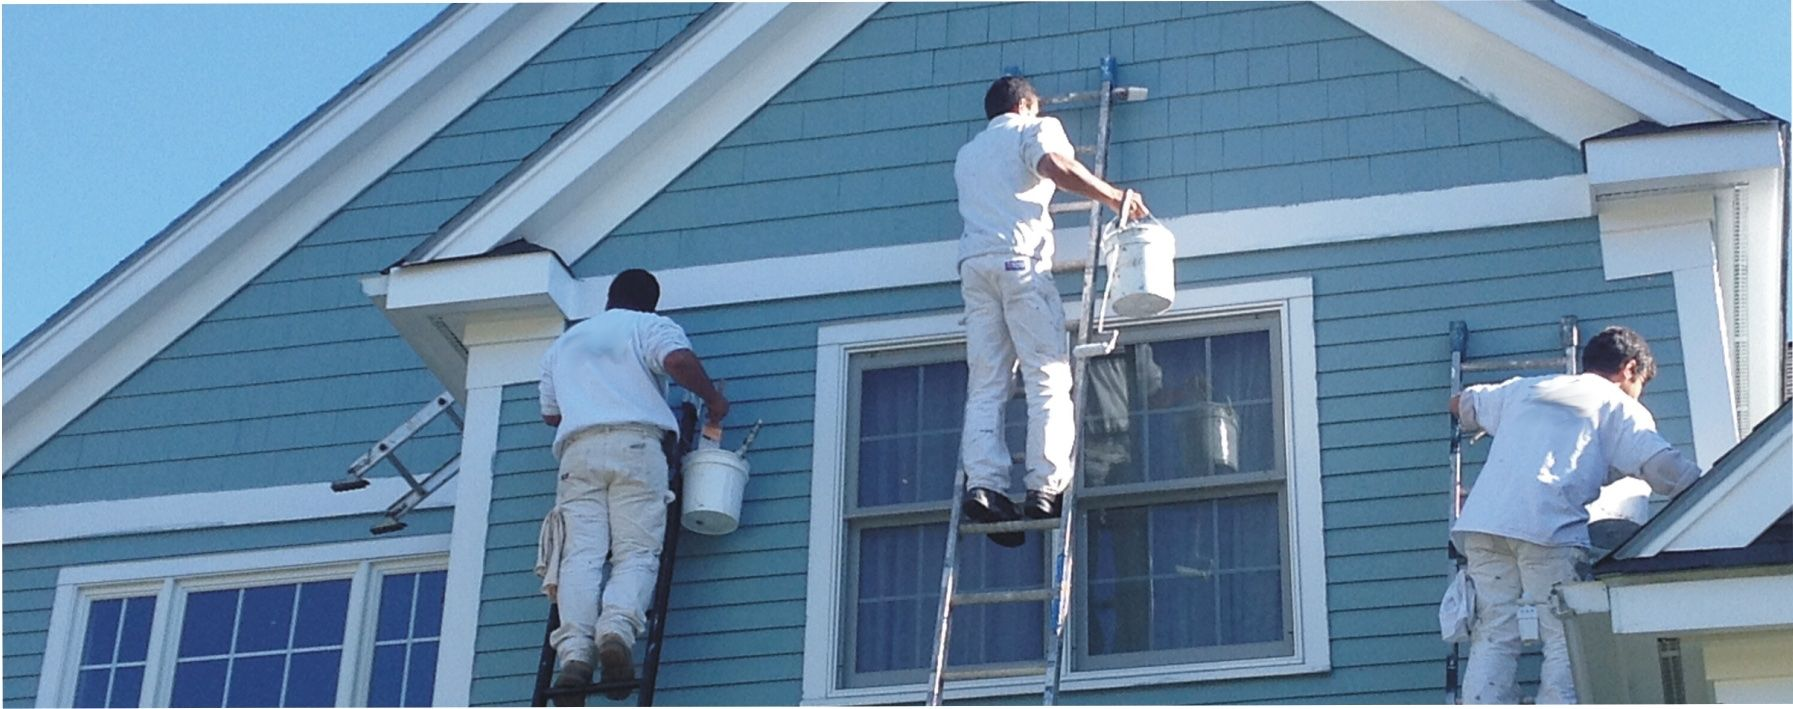 Affordable Painters In Ryde Can Transform Your Home House Paint Exterior House Painting Painting Services